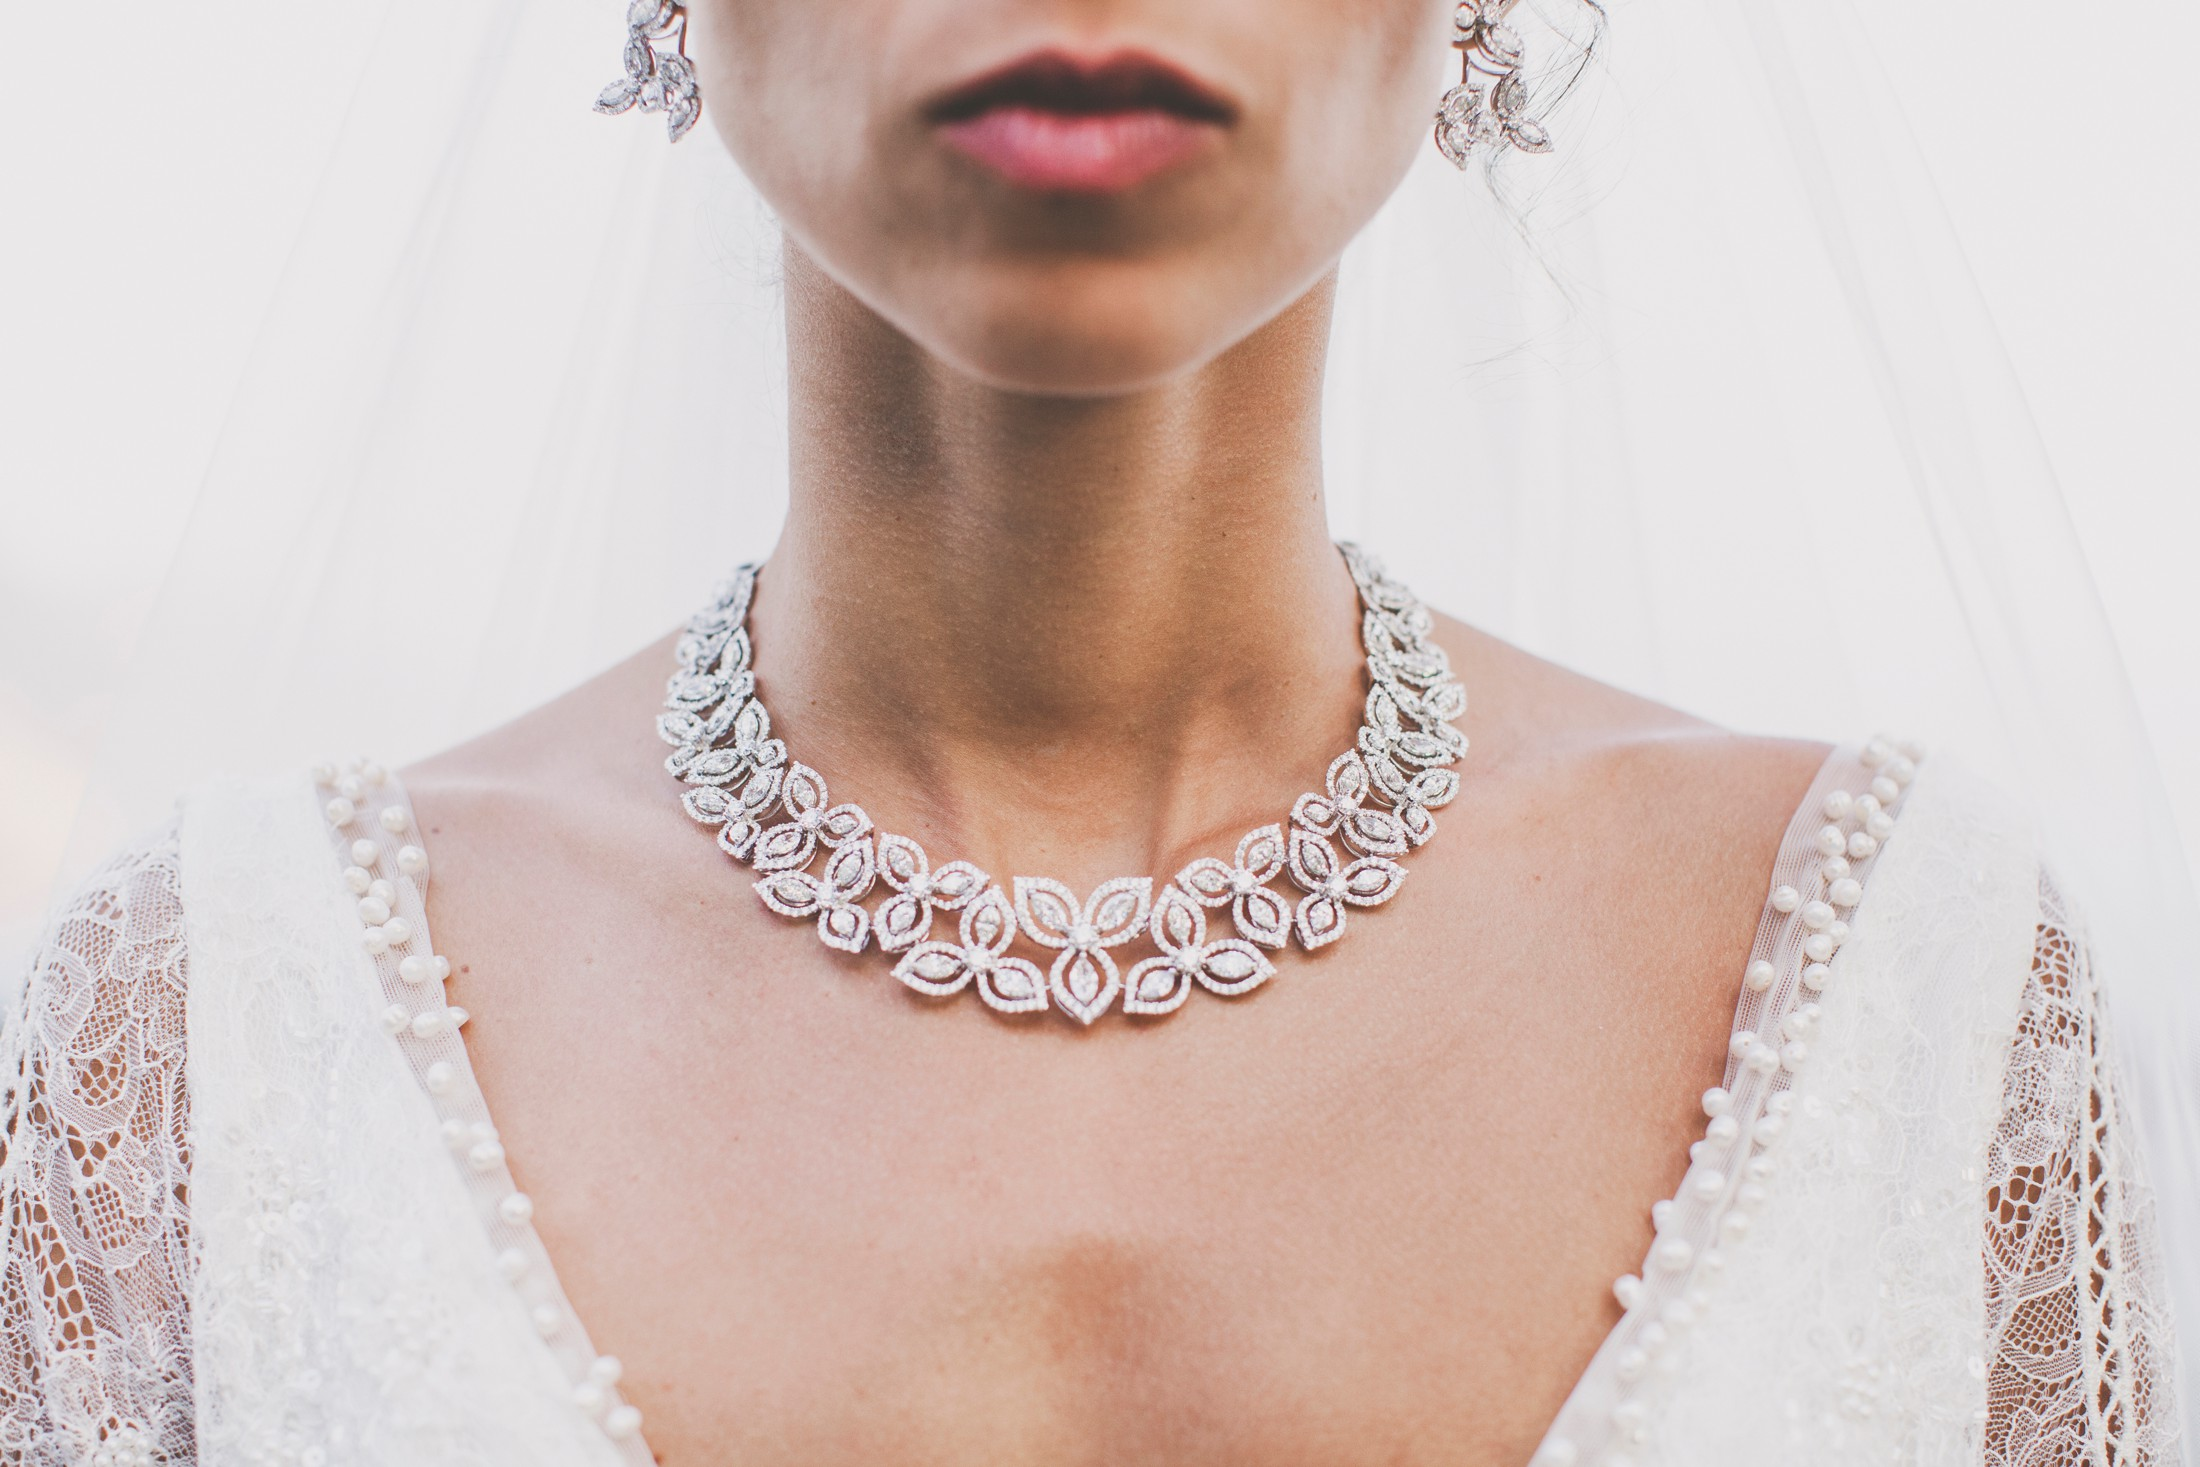 detail of the bride's wedding jewelry